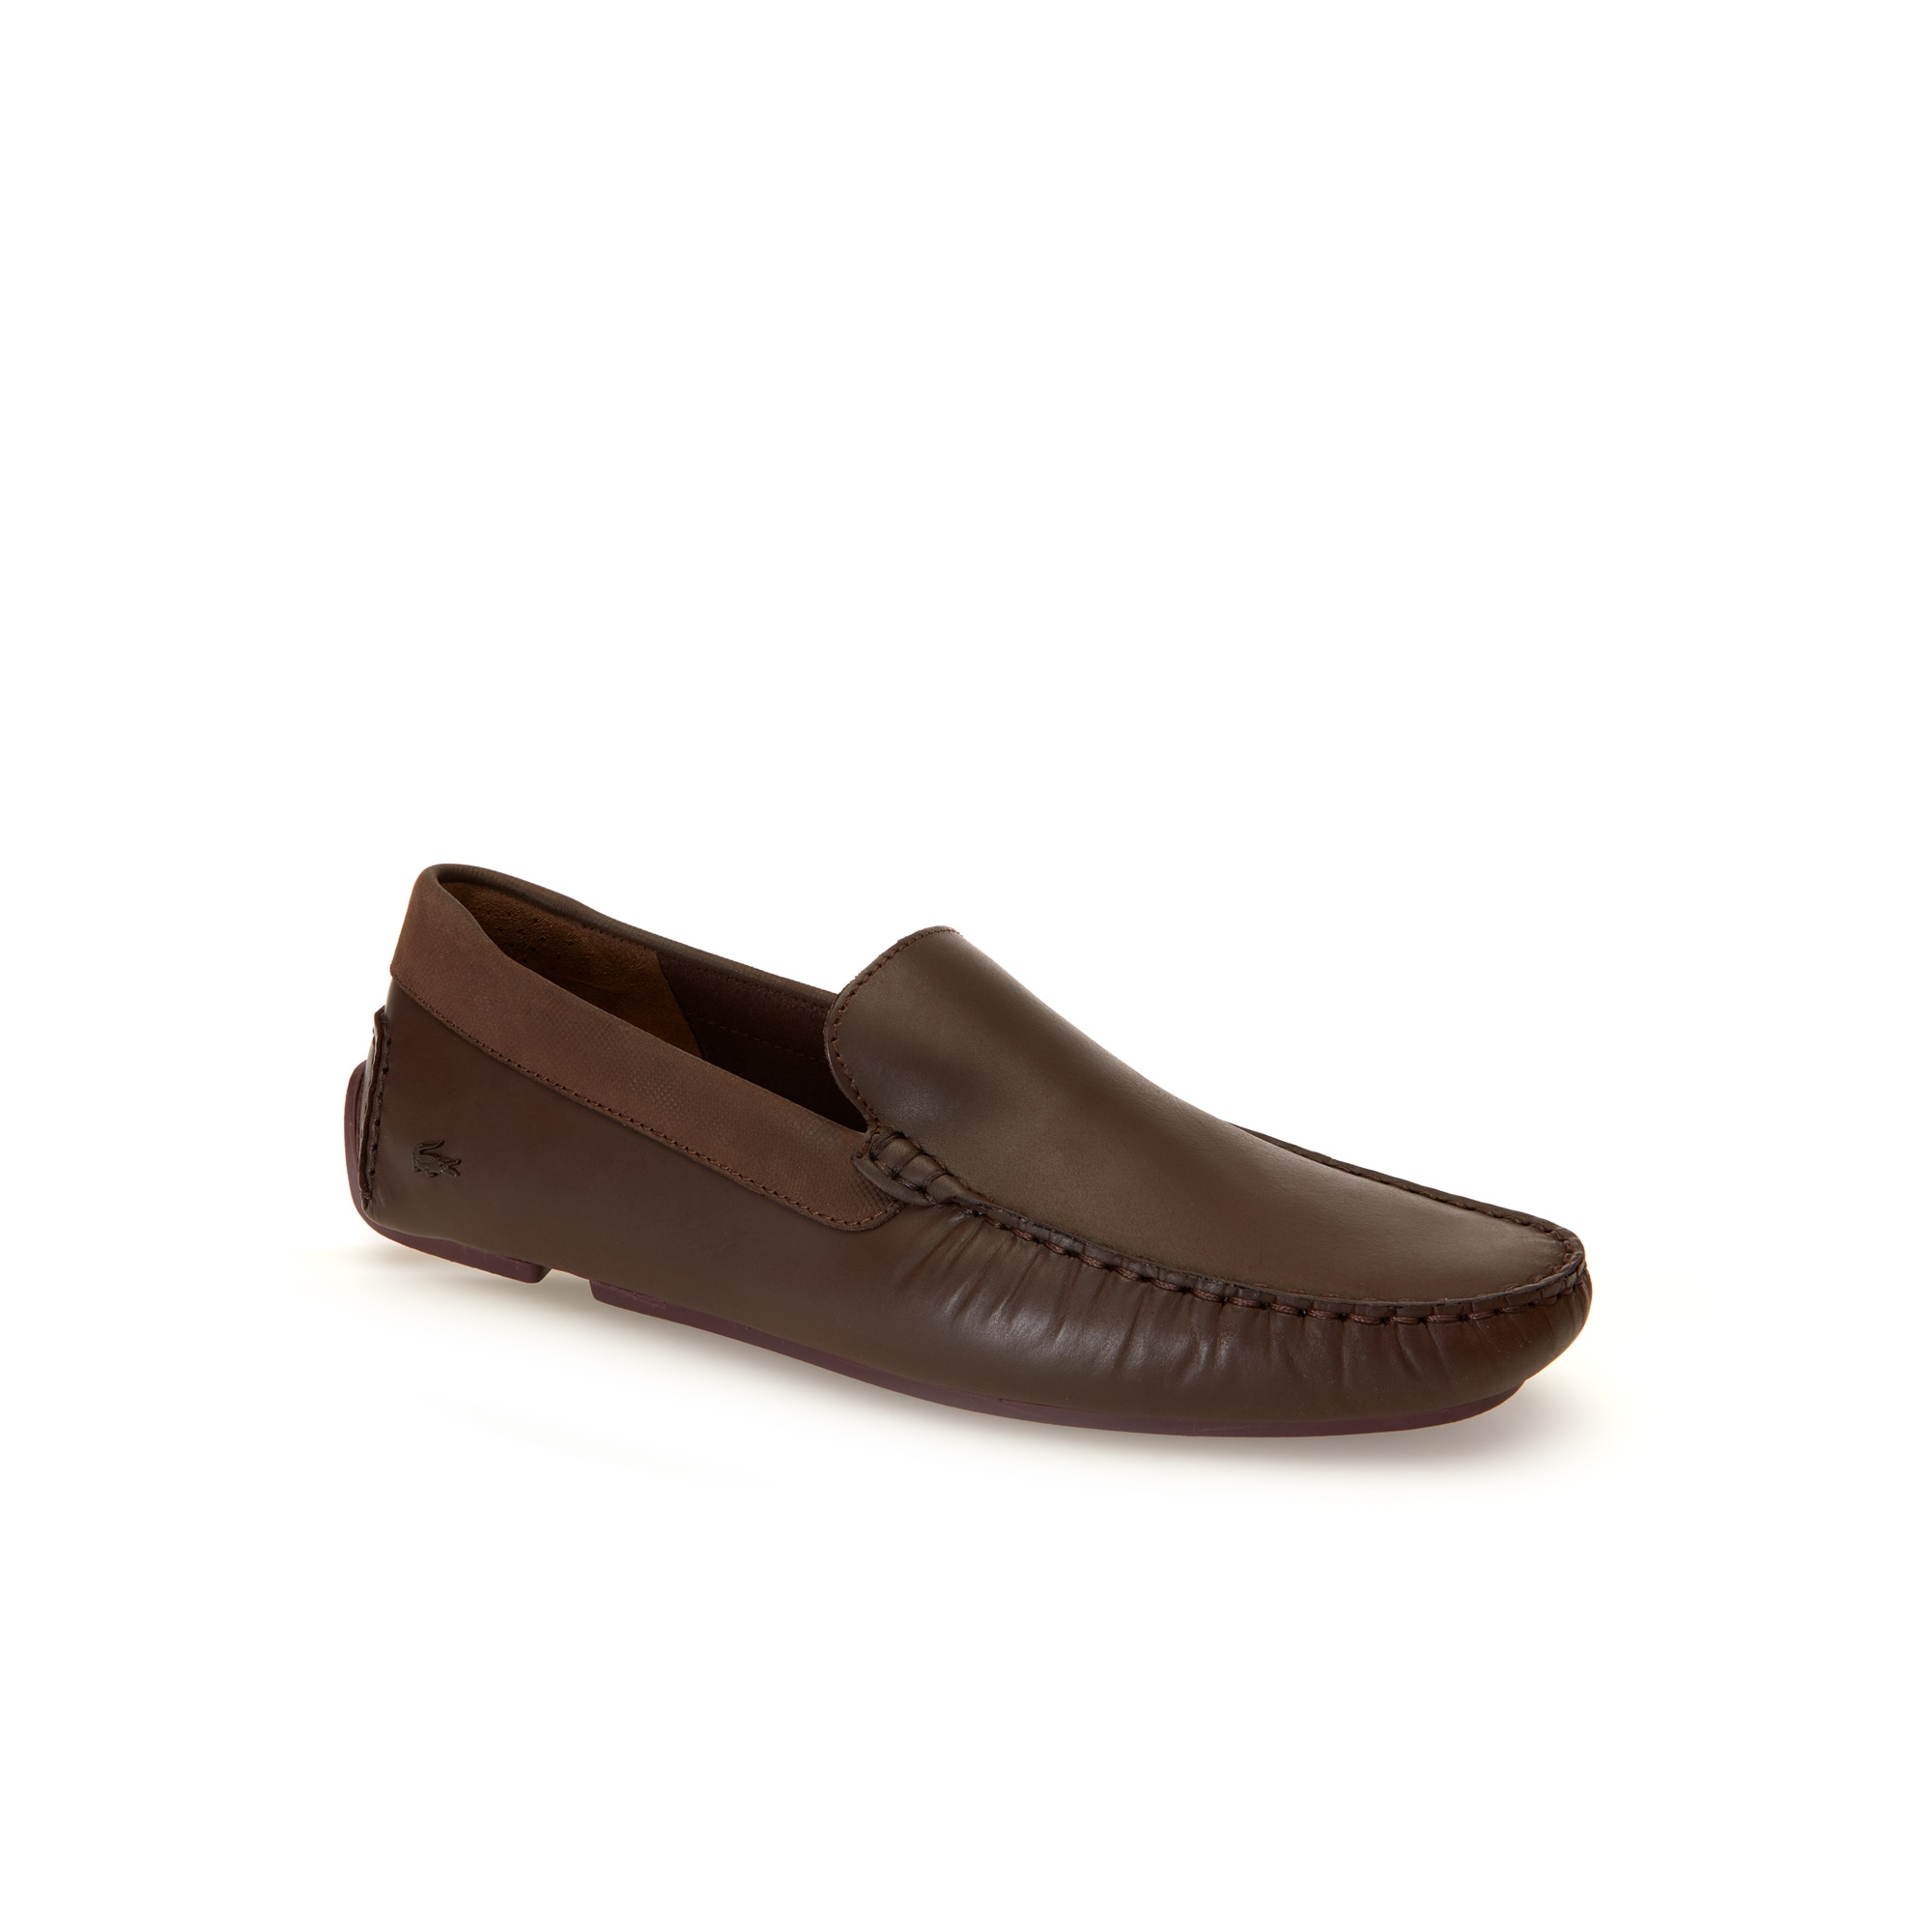 Men's Piloter Leather Moccasins